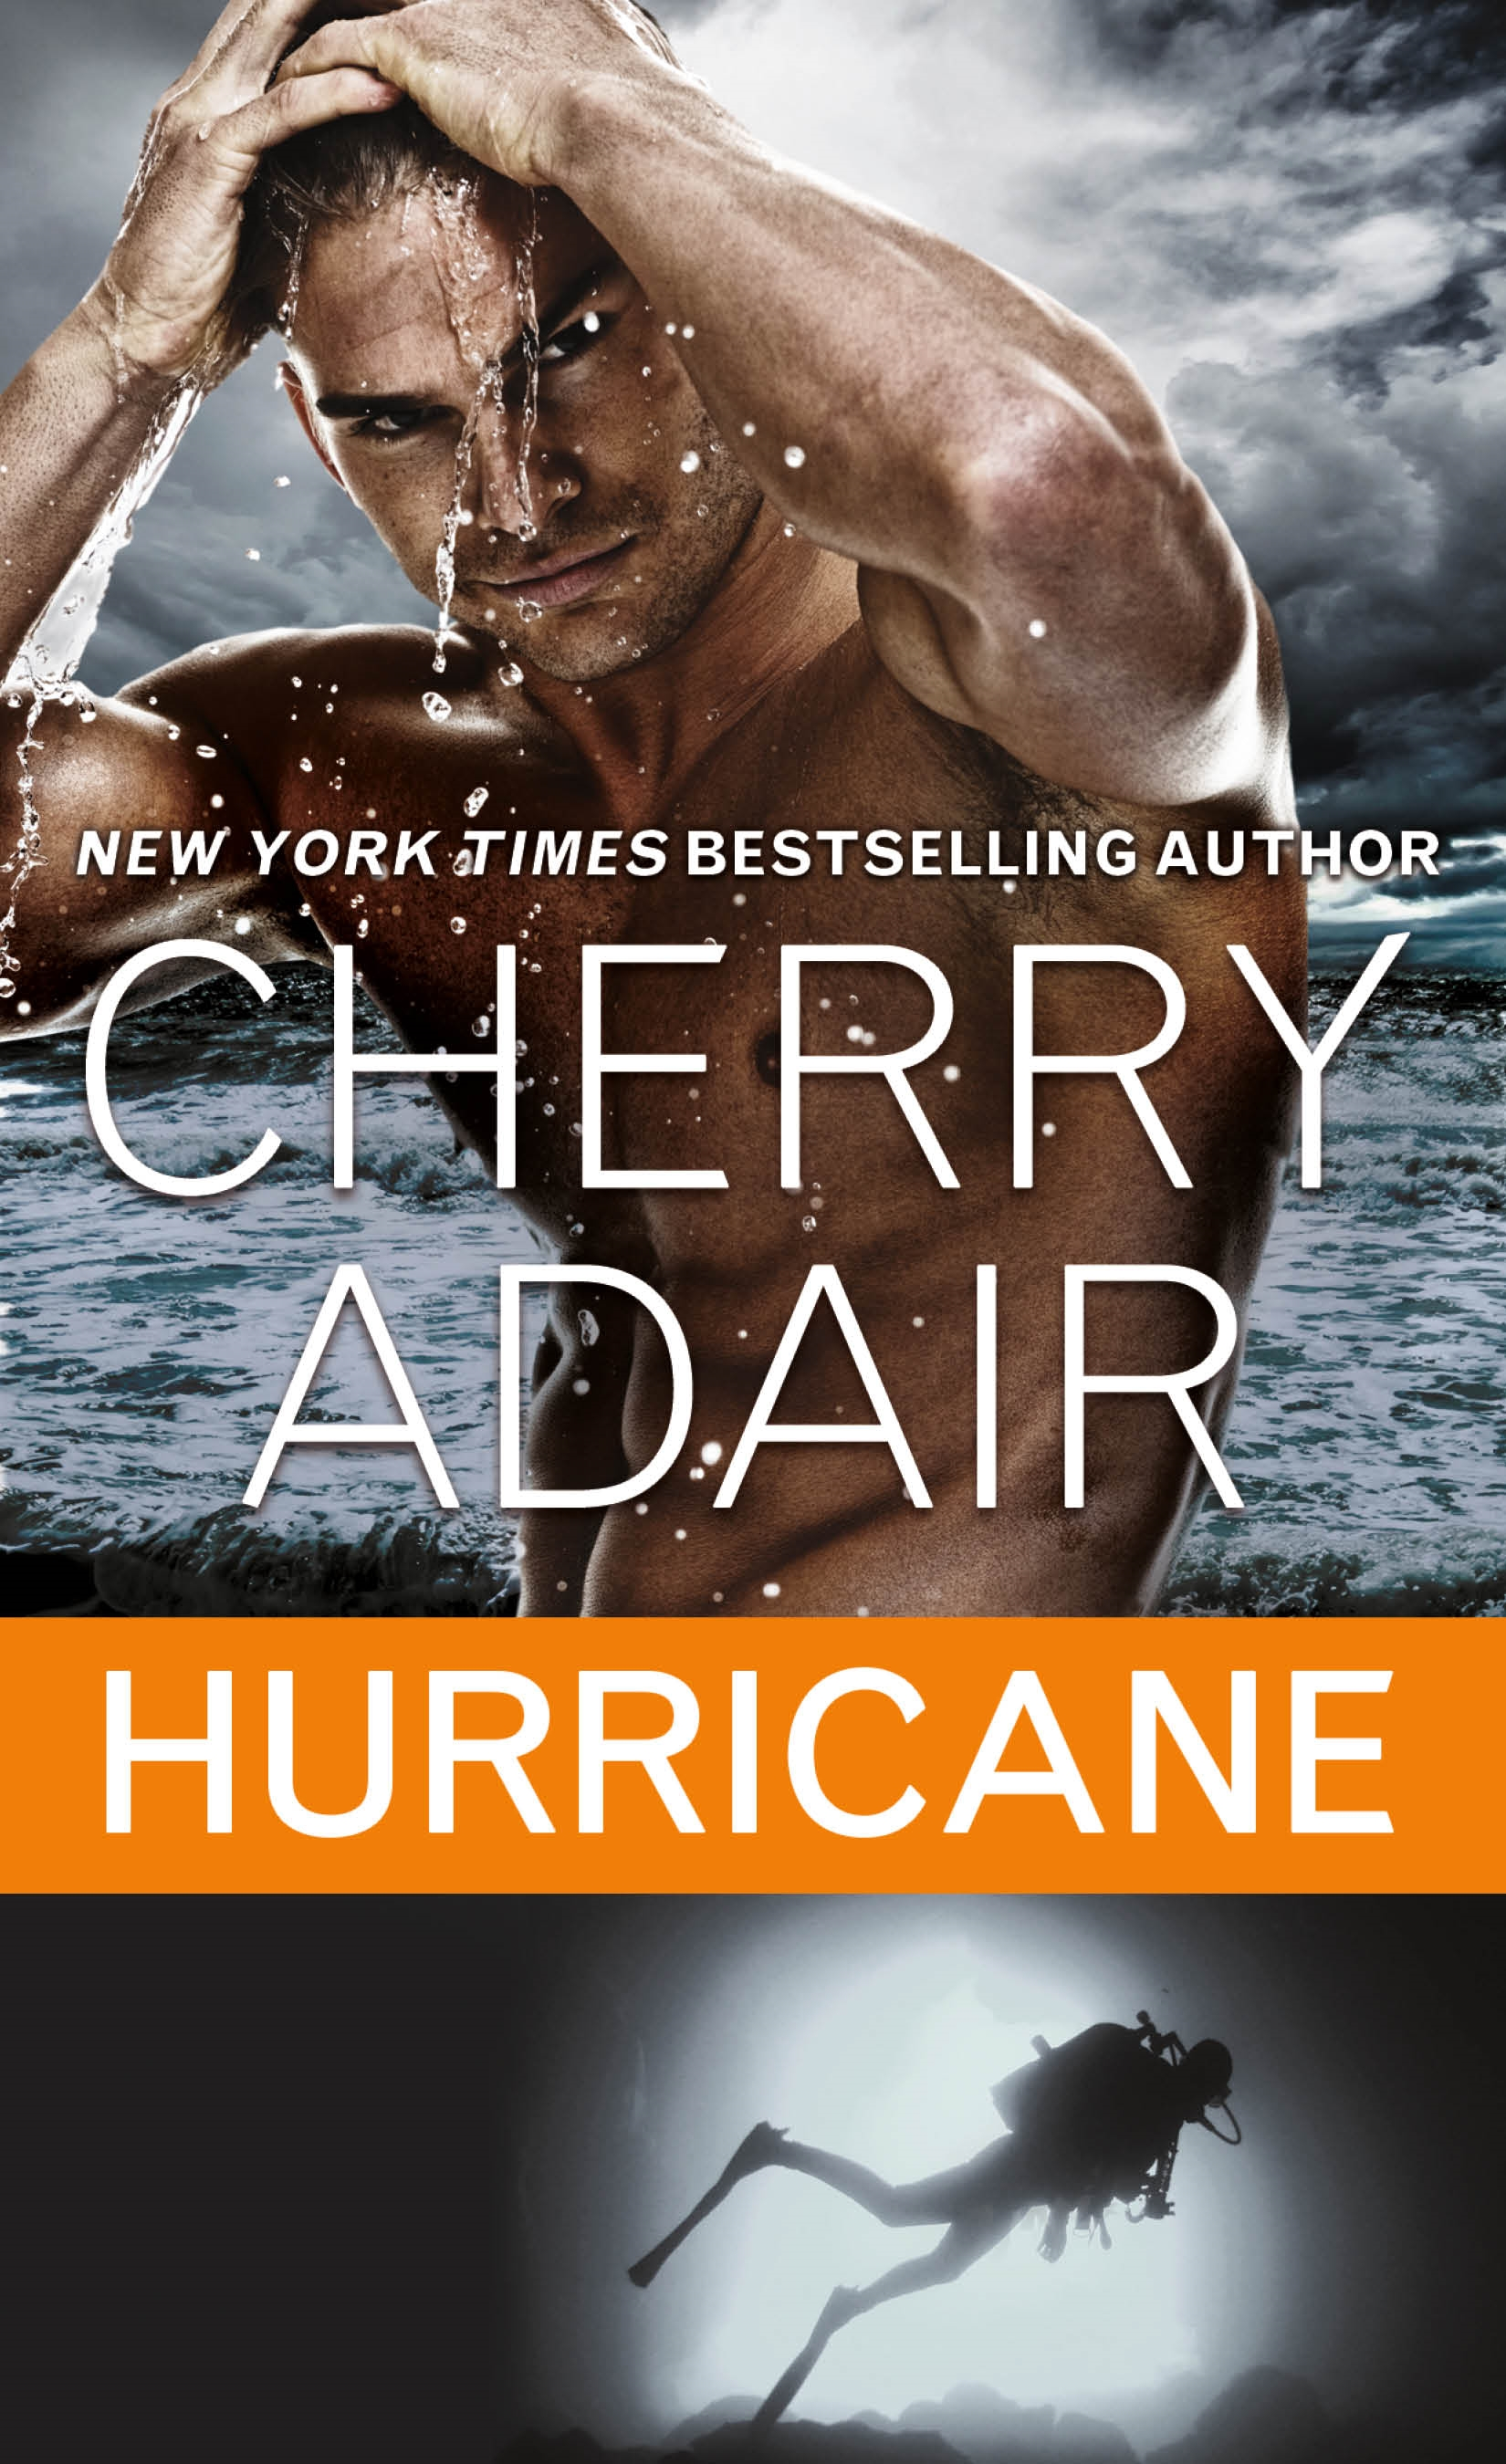 Review – Hurricane by Cherry Adair